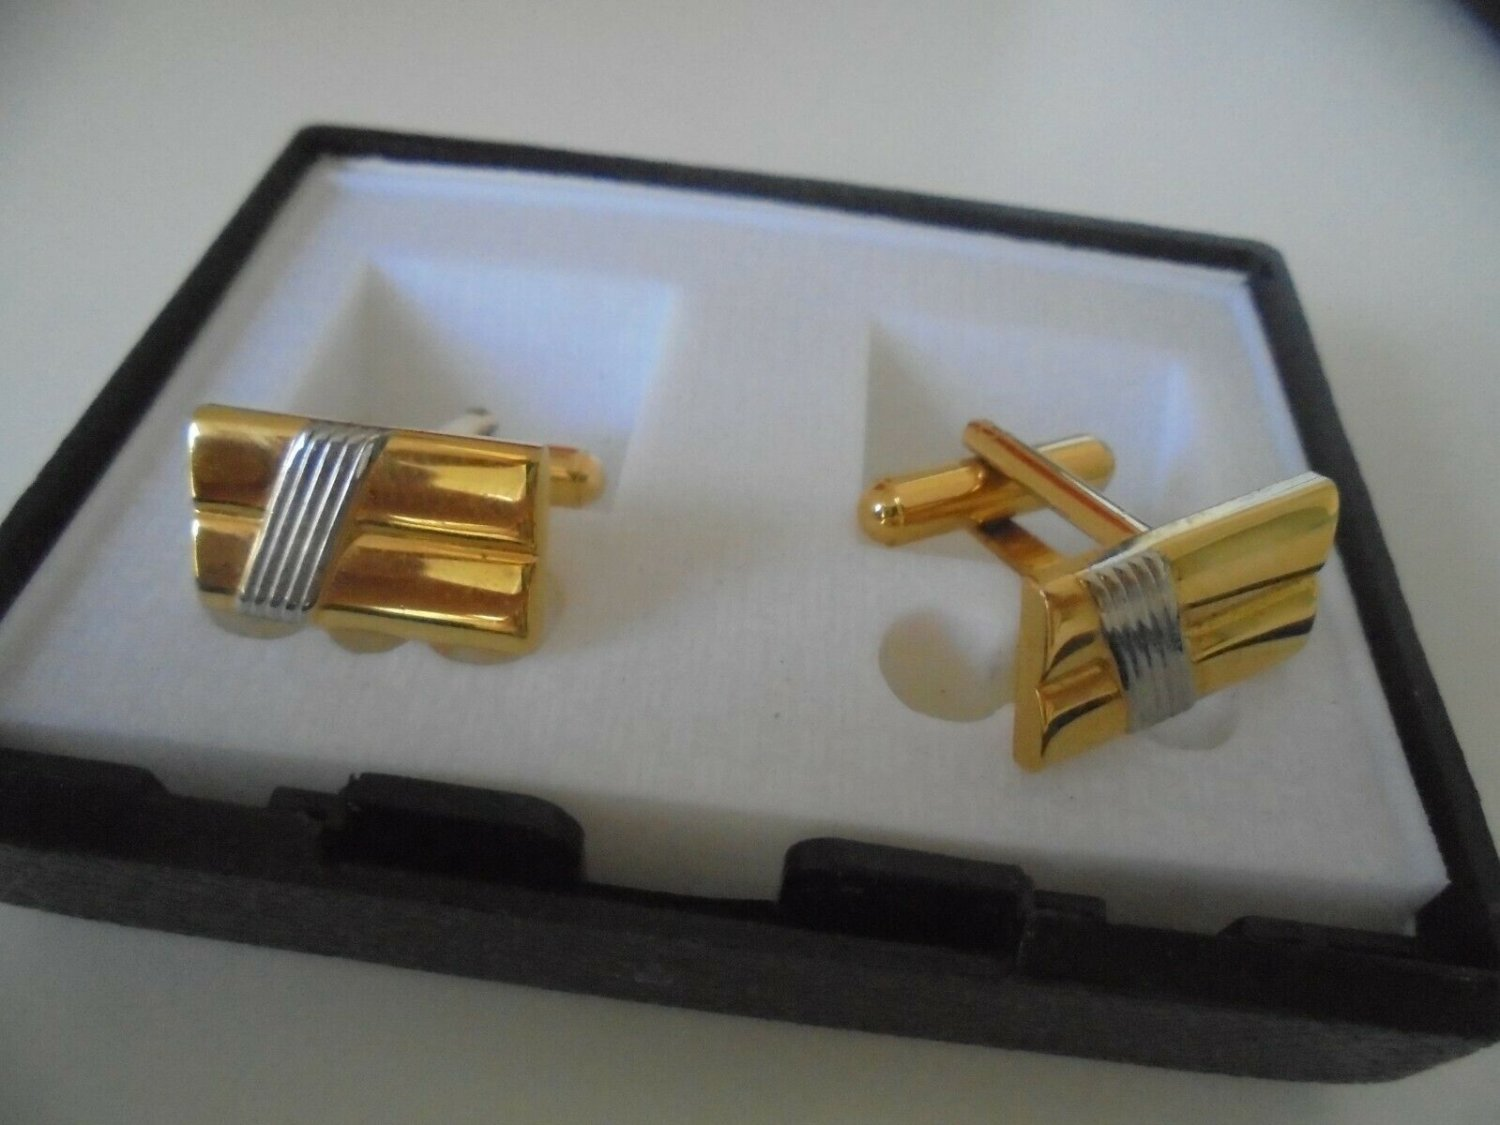 CUFFLINKS PLATED SILVER AND GOLD FROM 1970s in GIFT BOX ORIGINAL